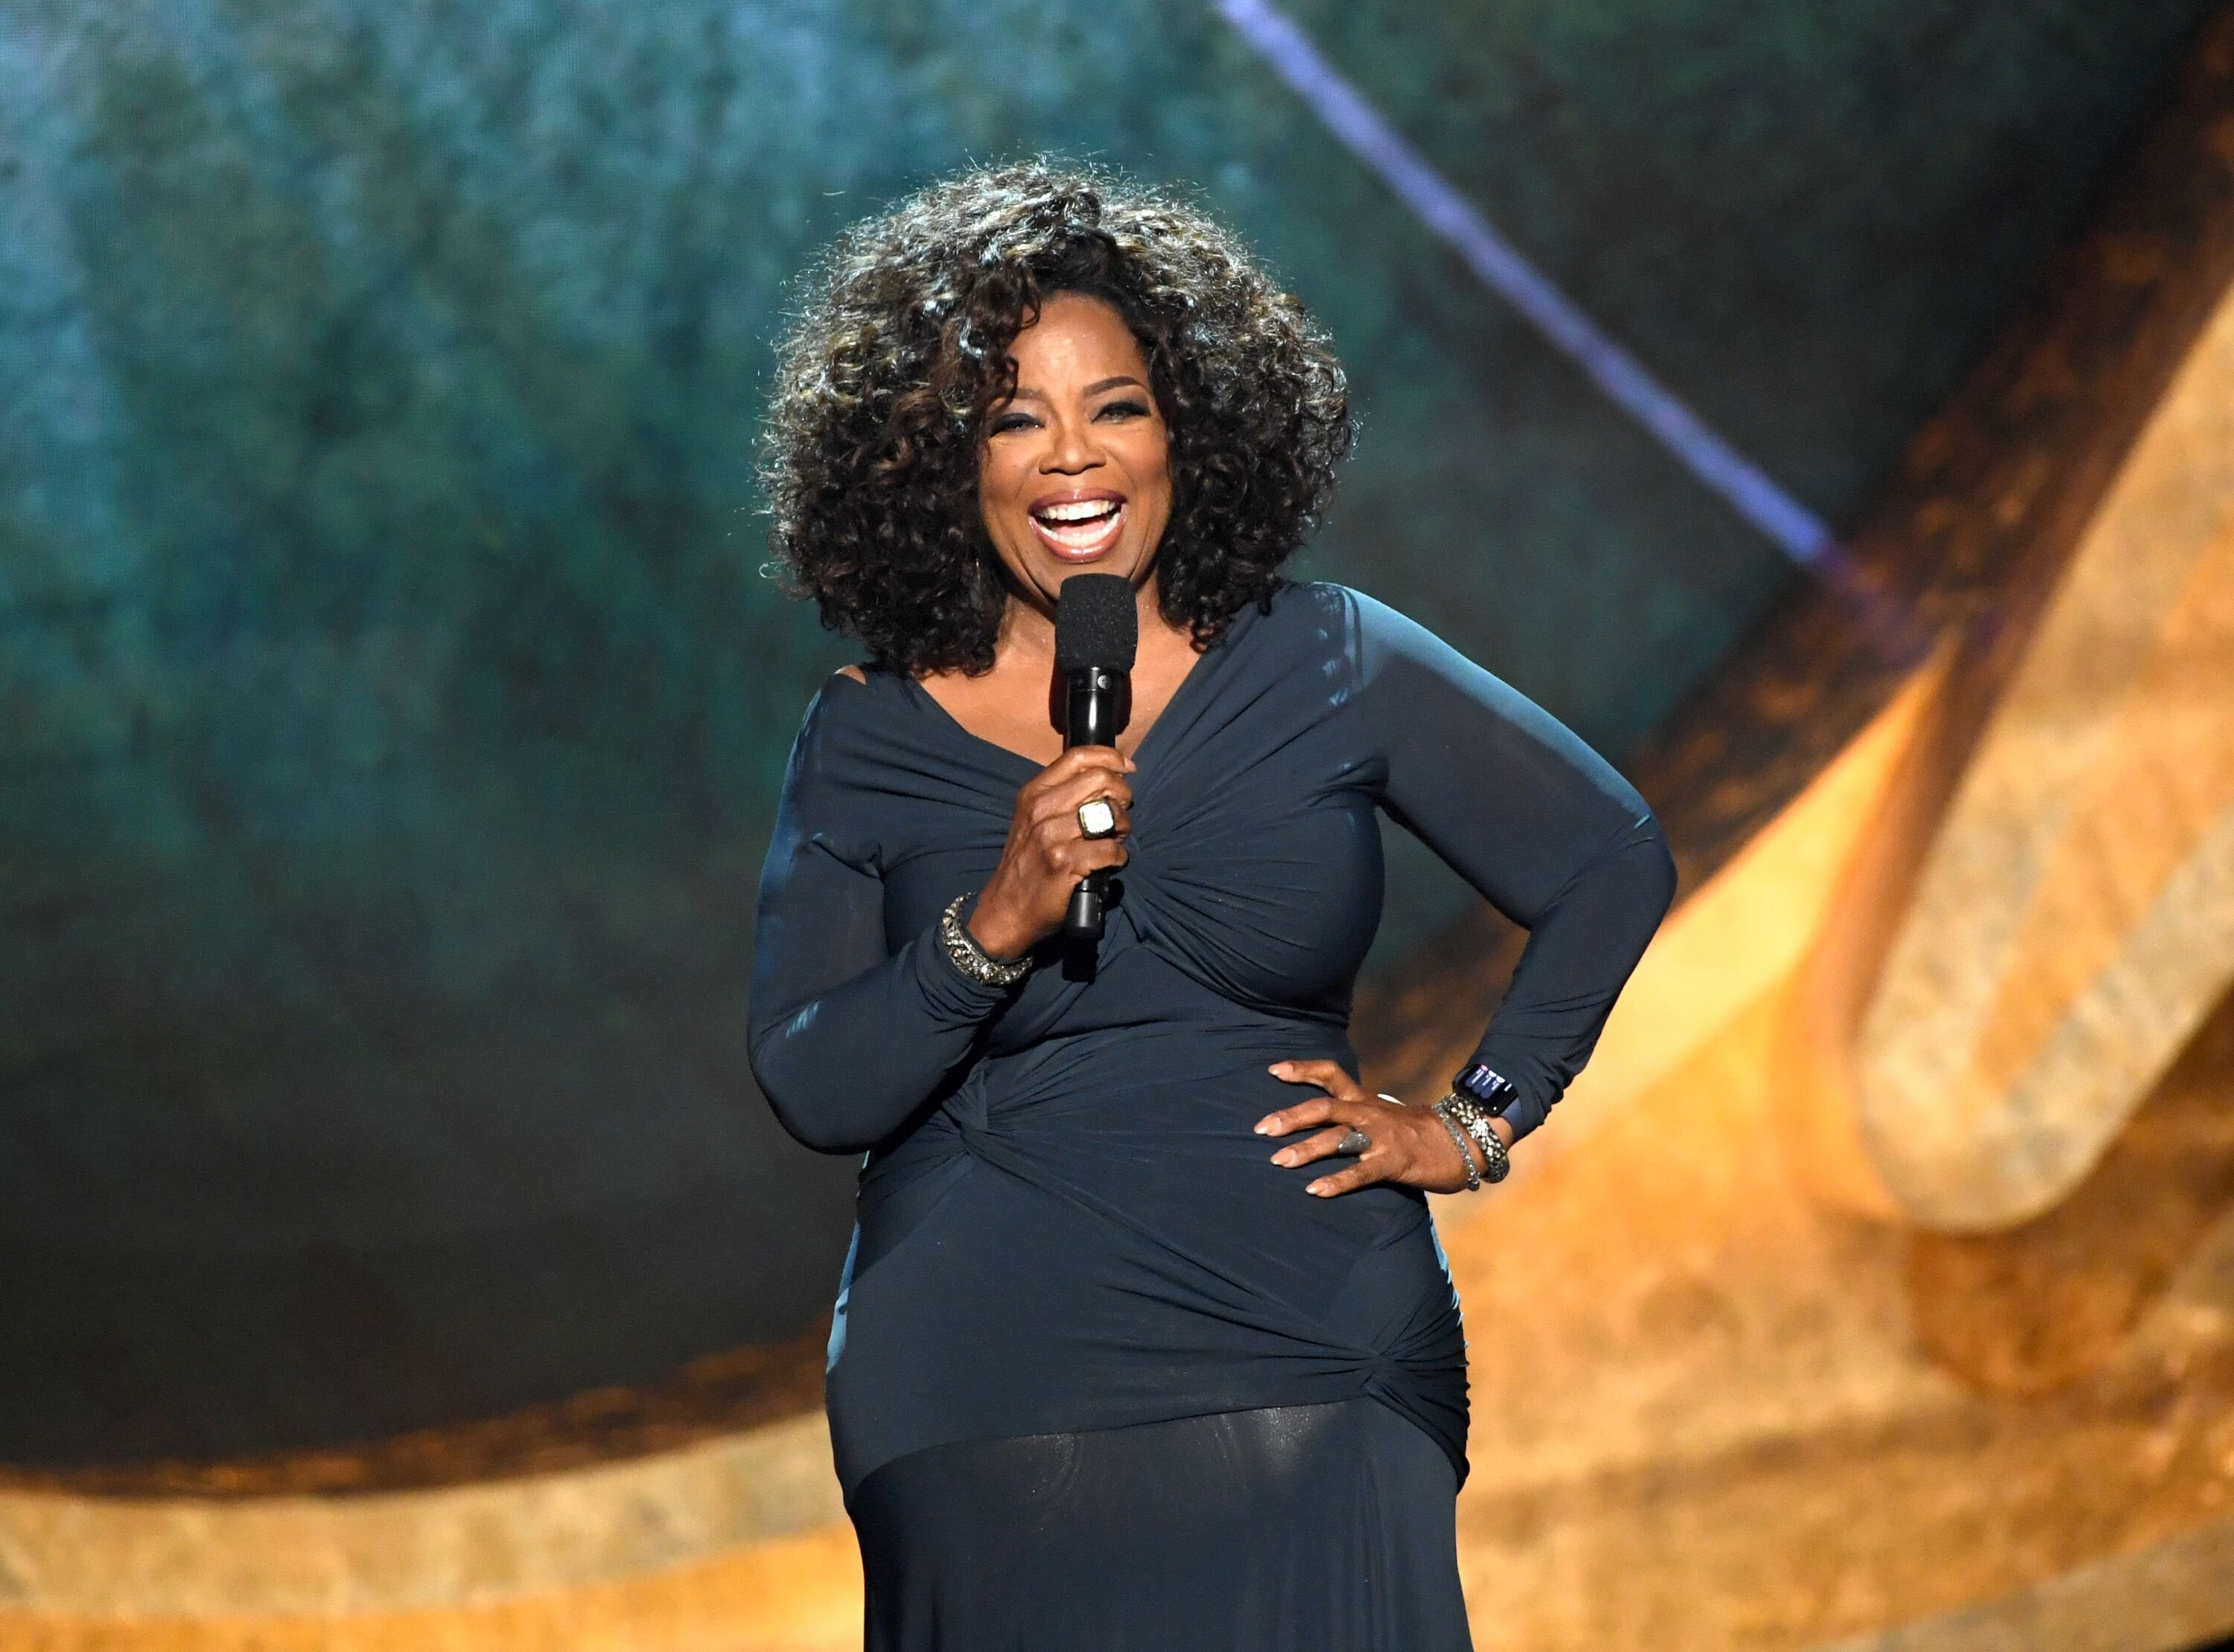 Media mogul and talk show host Oprah Winfrey/ Source: Getty Images